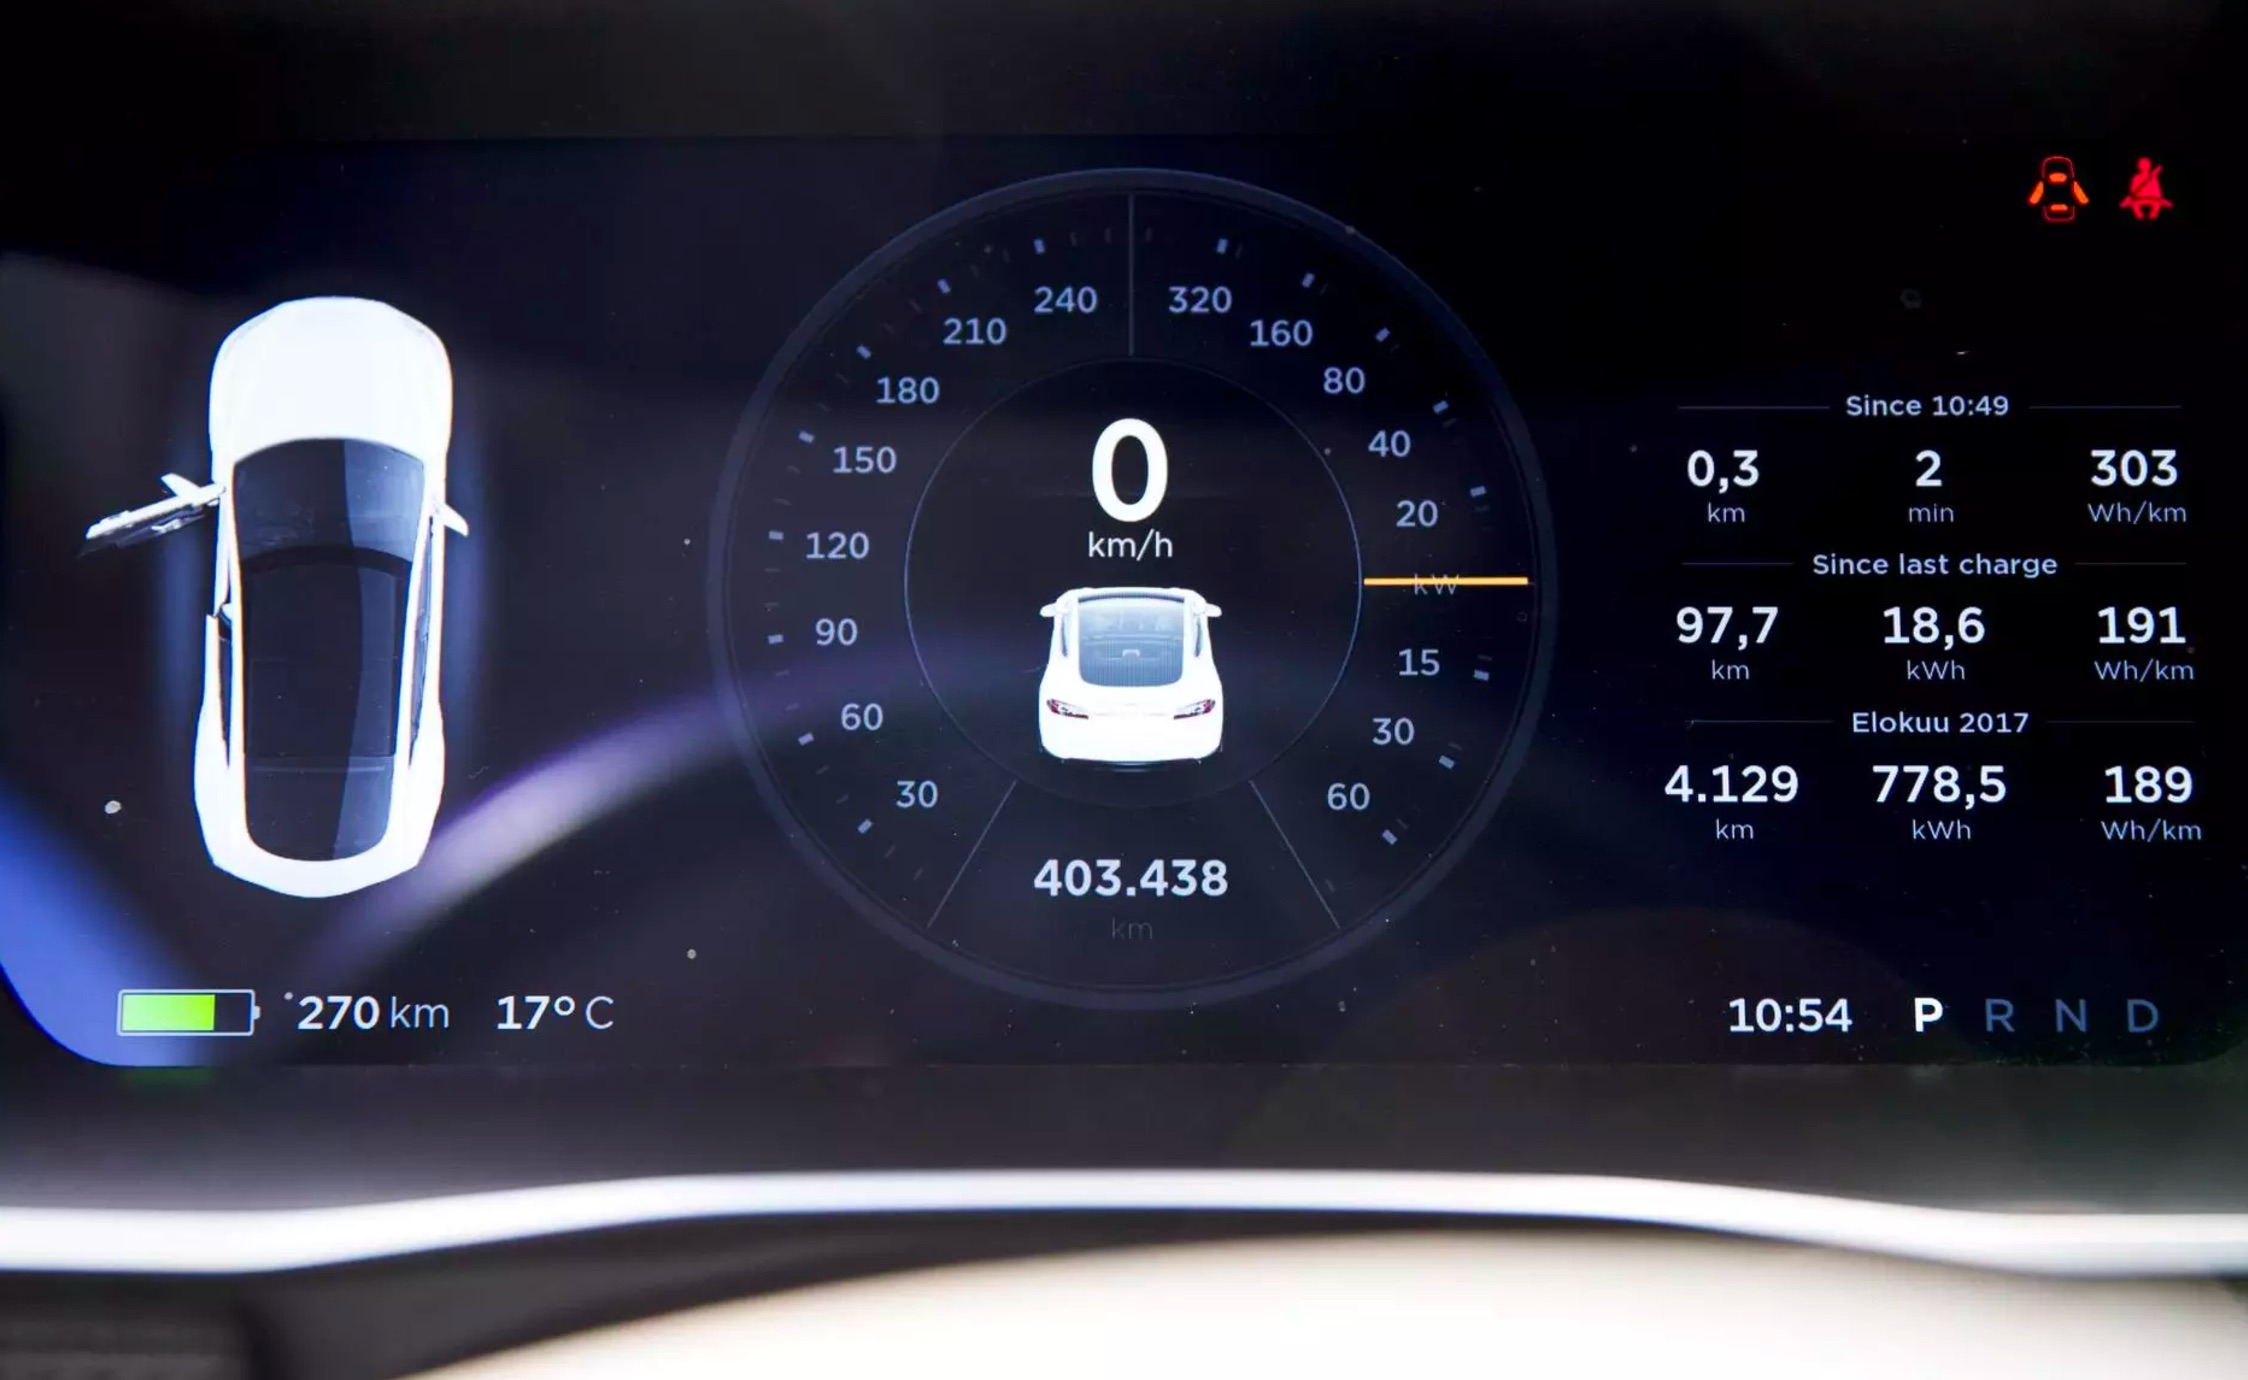 Finnish Tesla Model S taxi driver crosses 400,000 km, 93% of battery